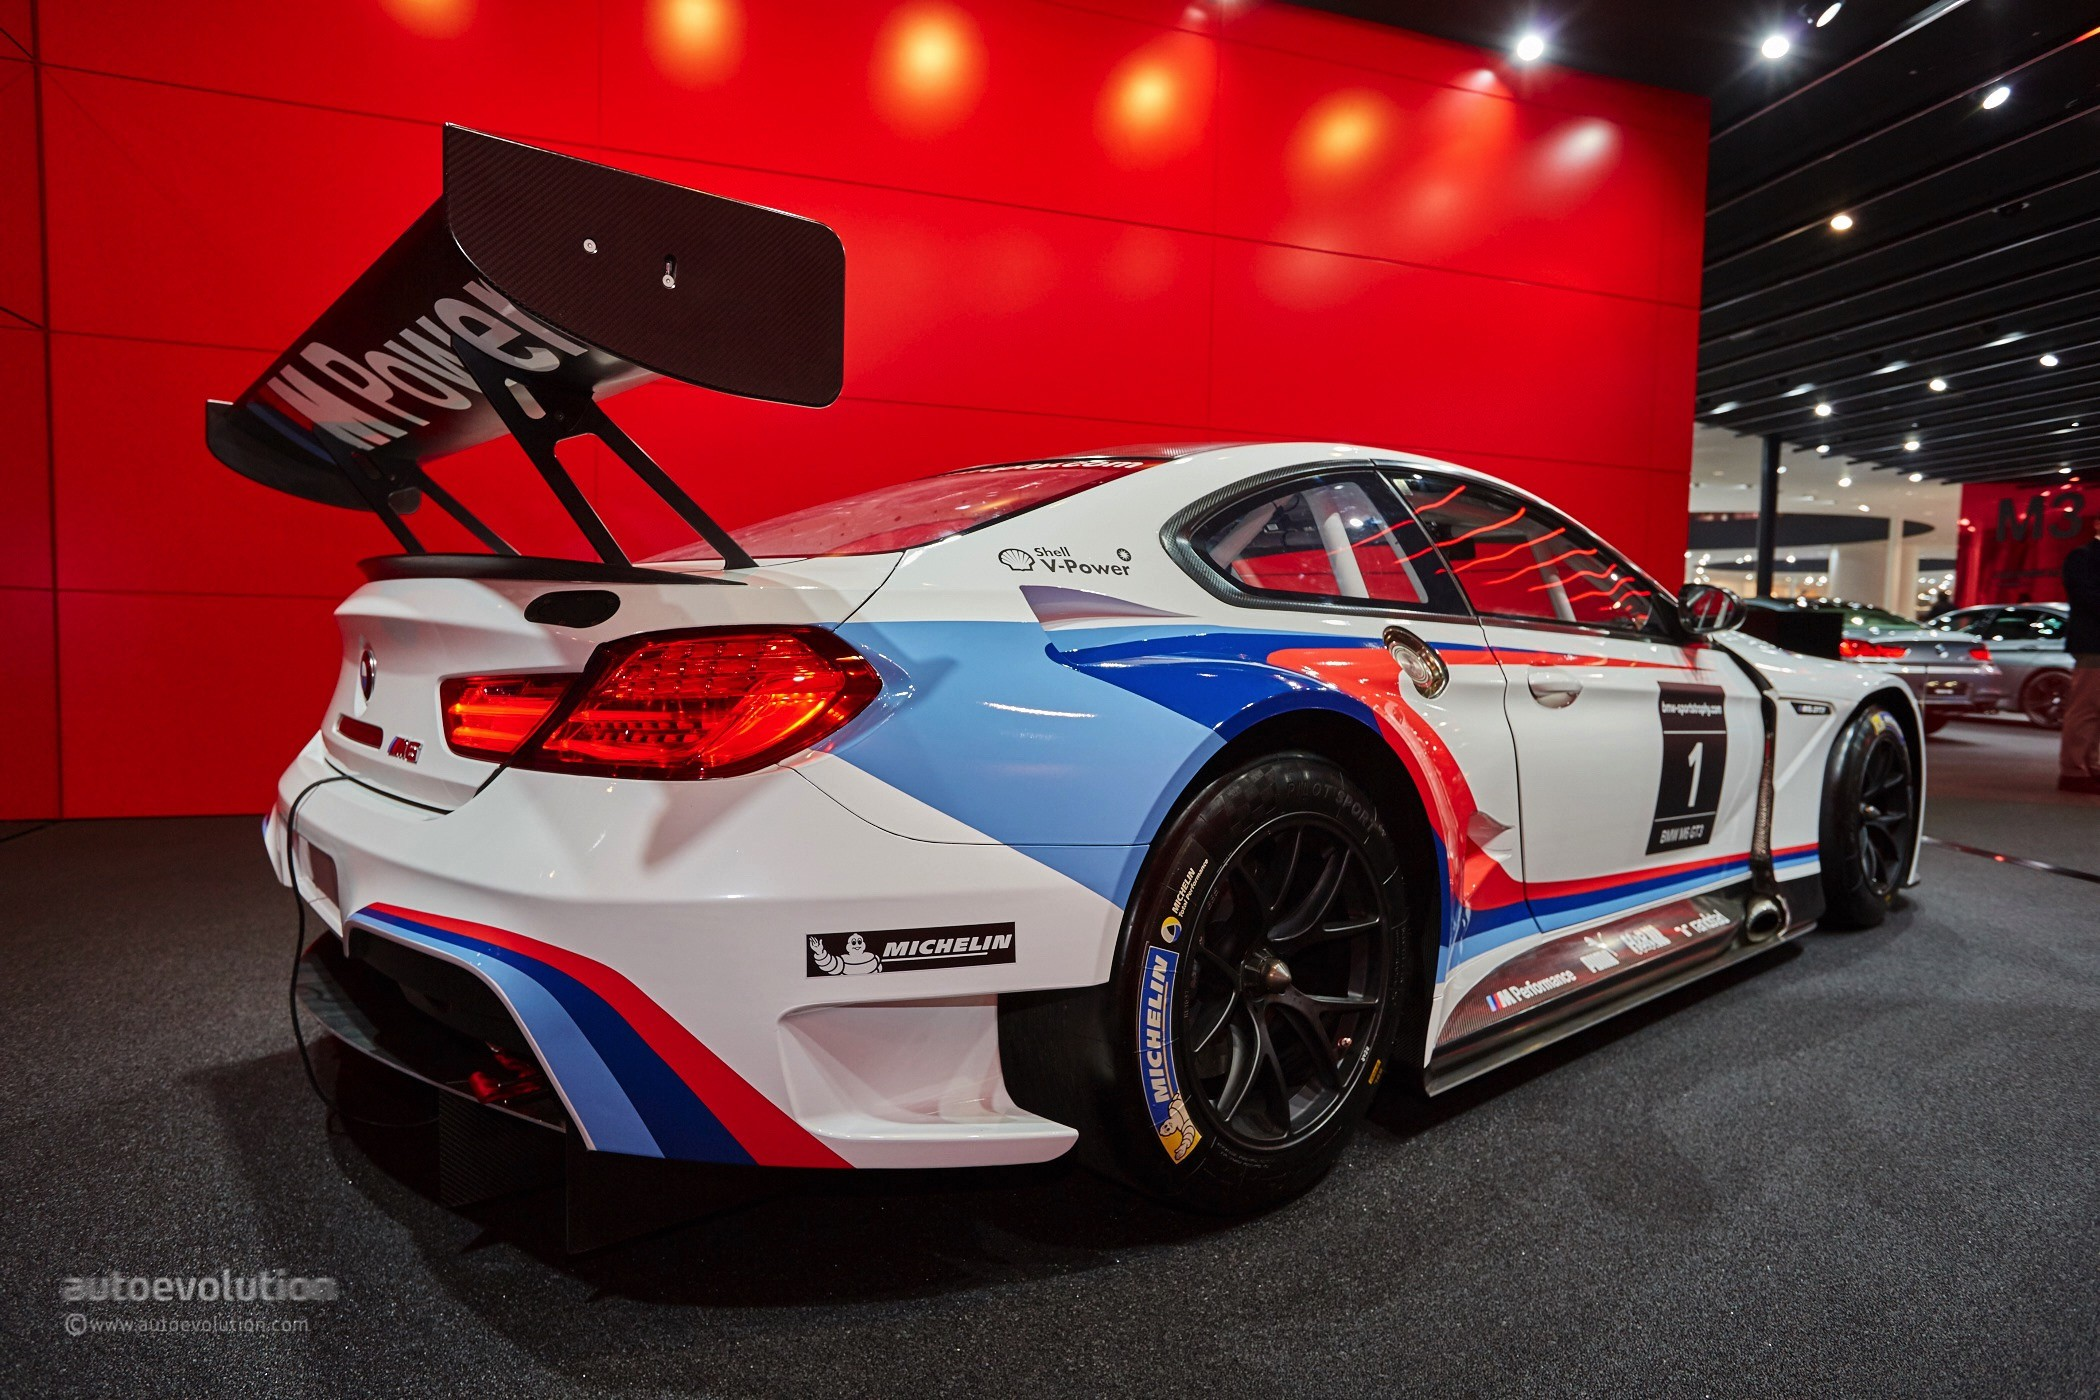 2016 Bmw M6 Gt3 Is The Definition Of Eye Candy At Frankfurt Autoevolution